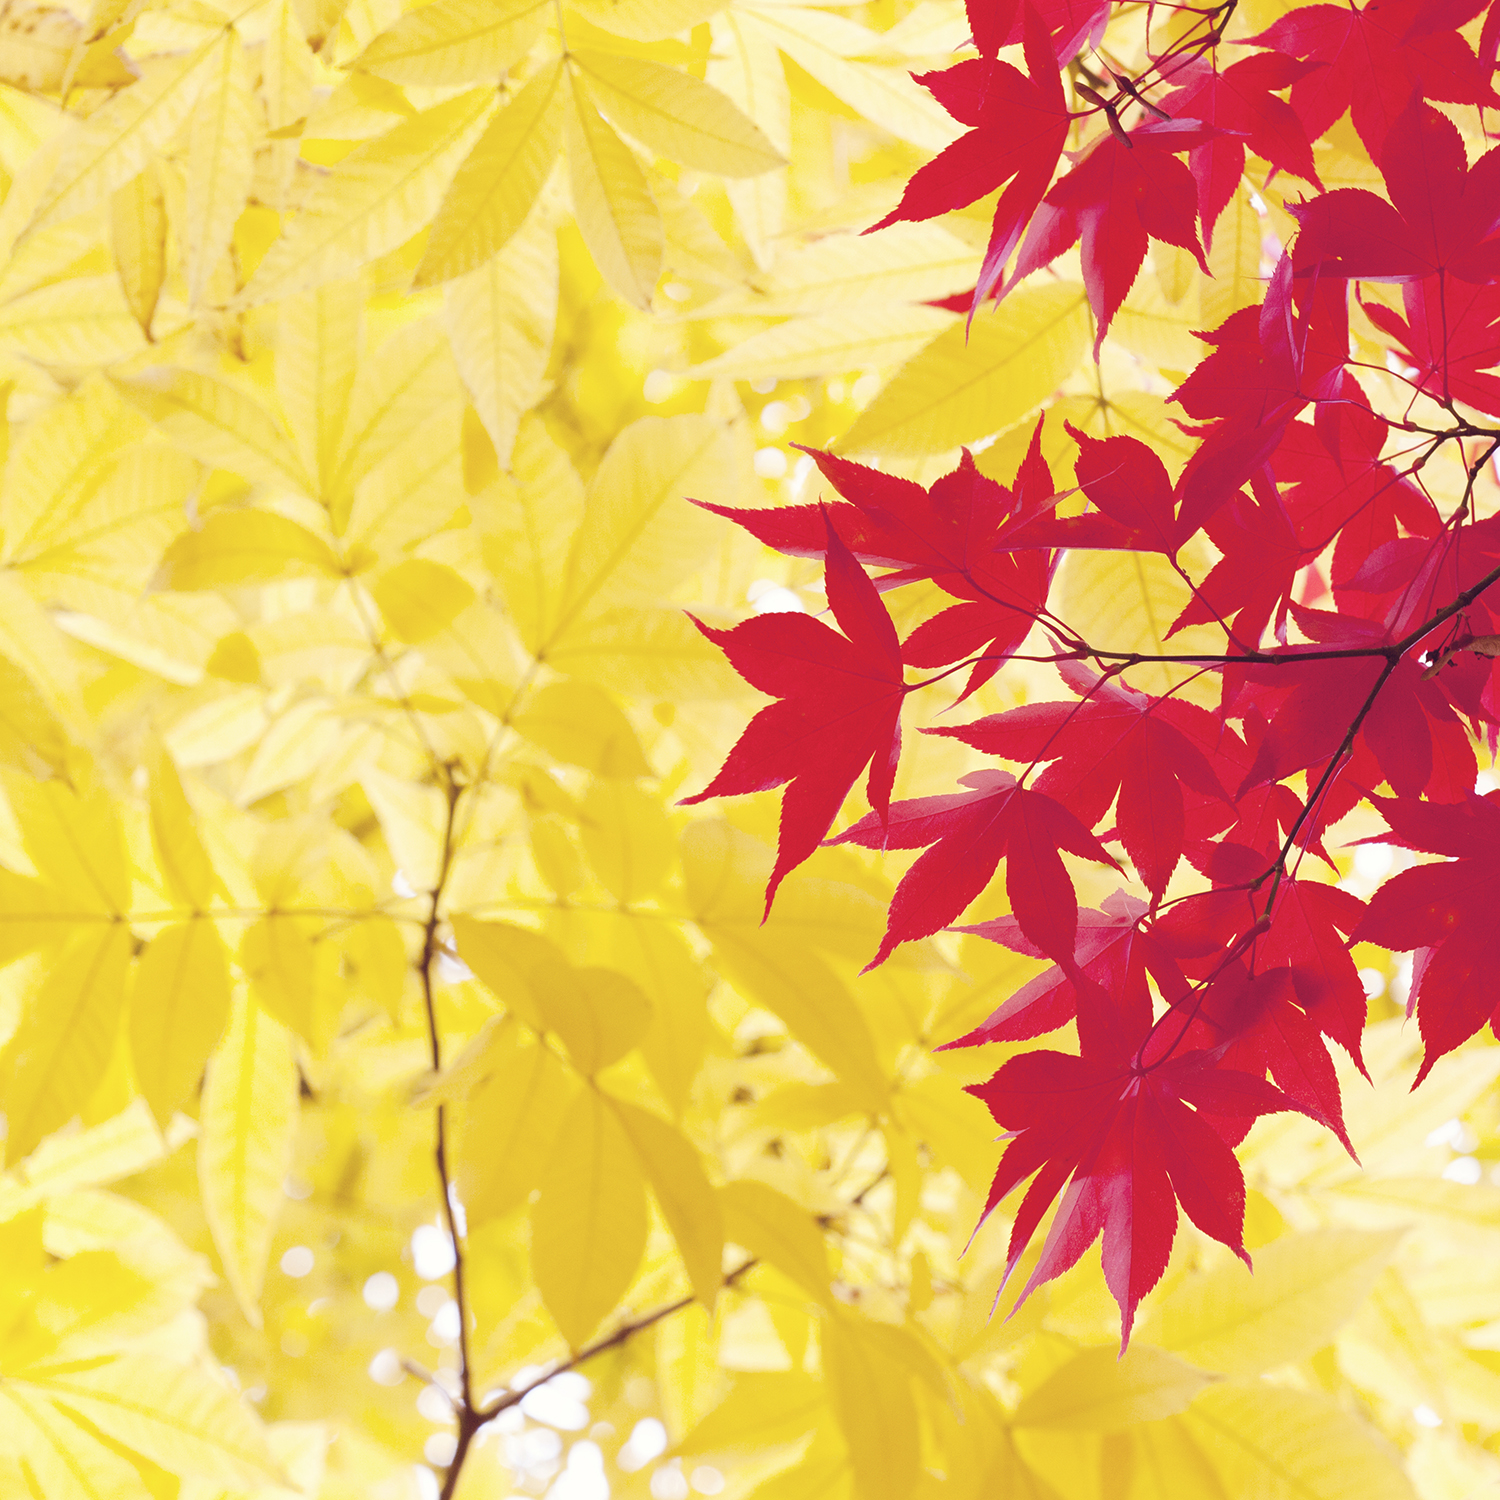 Six Simple and Uplifting Ways to Find Your Creative Flow | Natasha Denness Coaching | natashadenness.co.uk (Photo of autumn leaves)